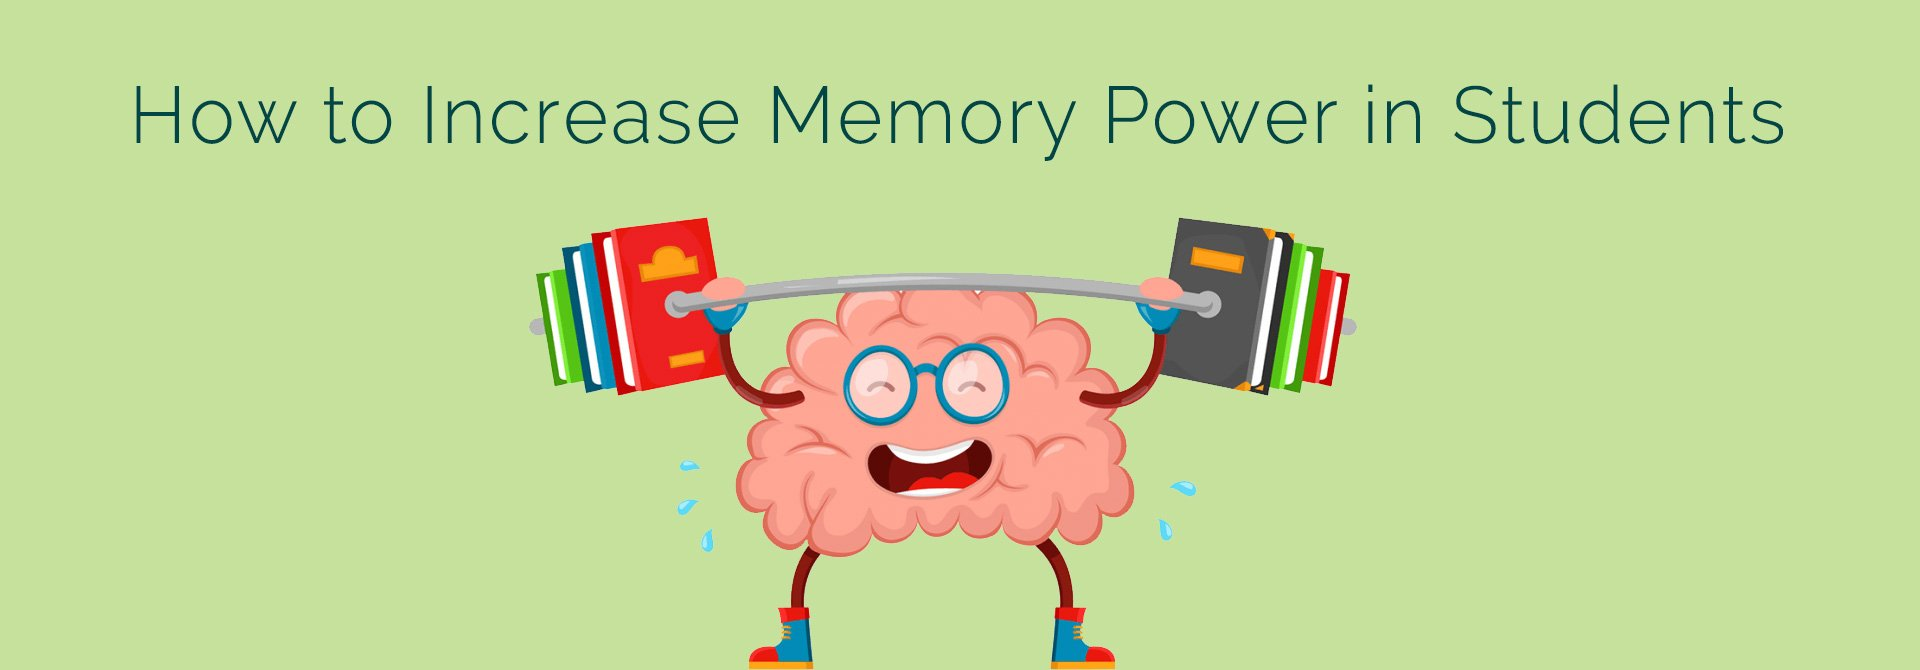 how-to-increase-memory-power-in-students